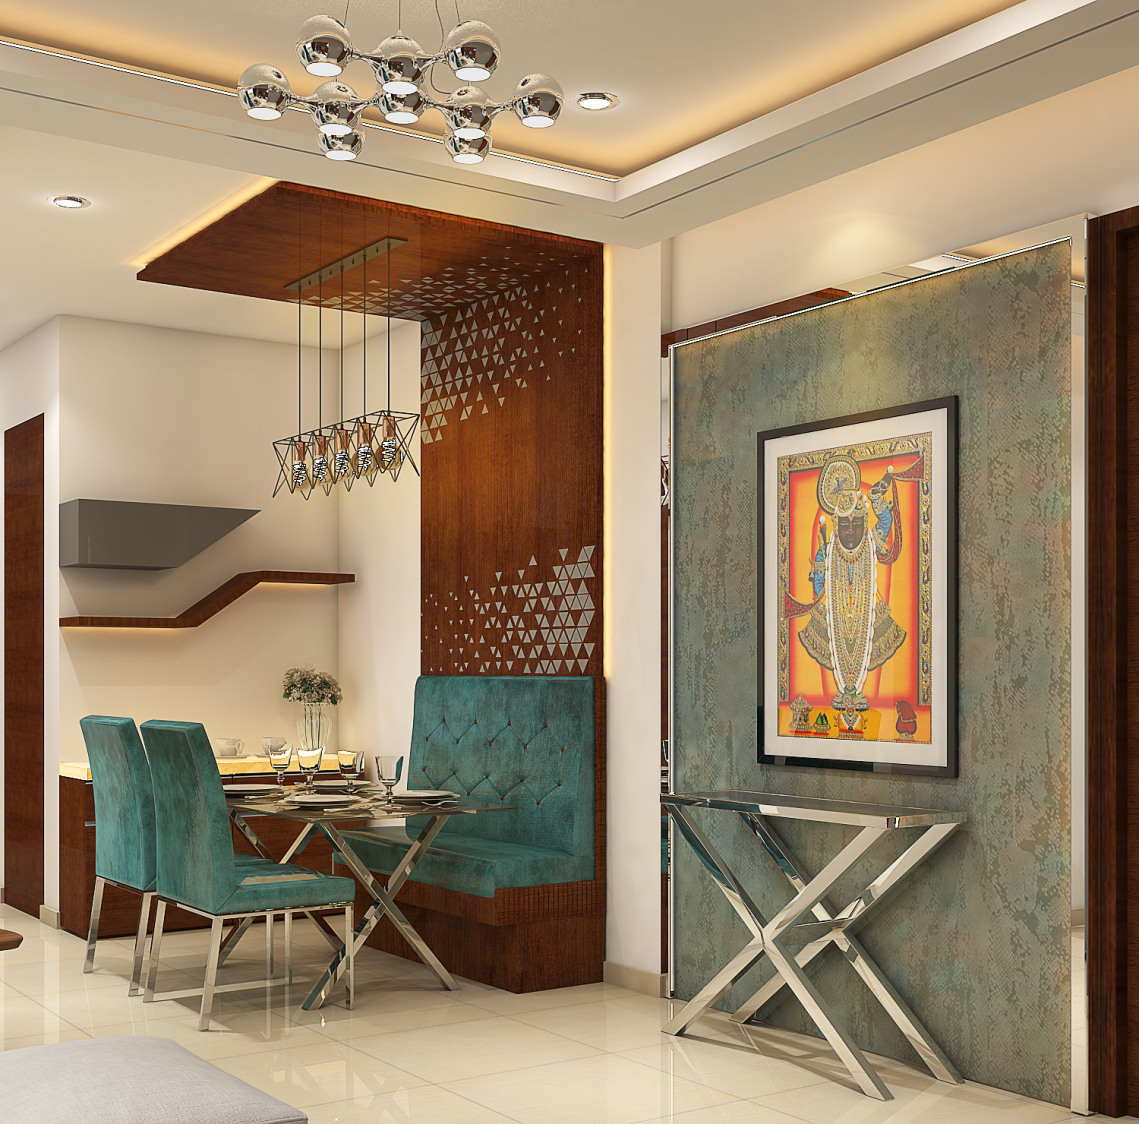 Dinning space with modern velvet furniture and wall decor by Nidhi Rathod Dining-room Contemporary | Interior Design Photos & Ideas